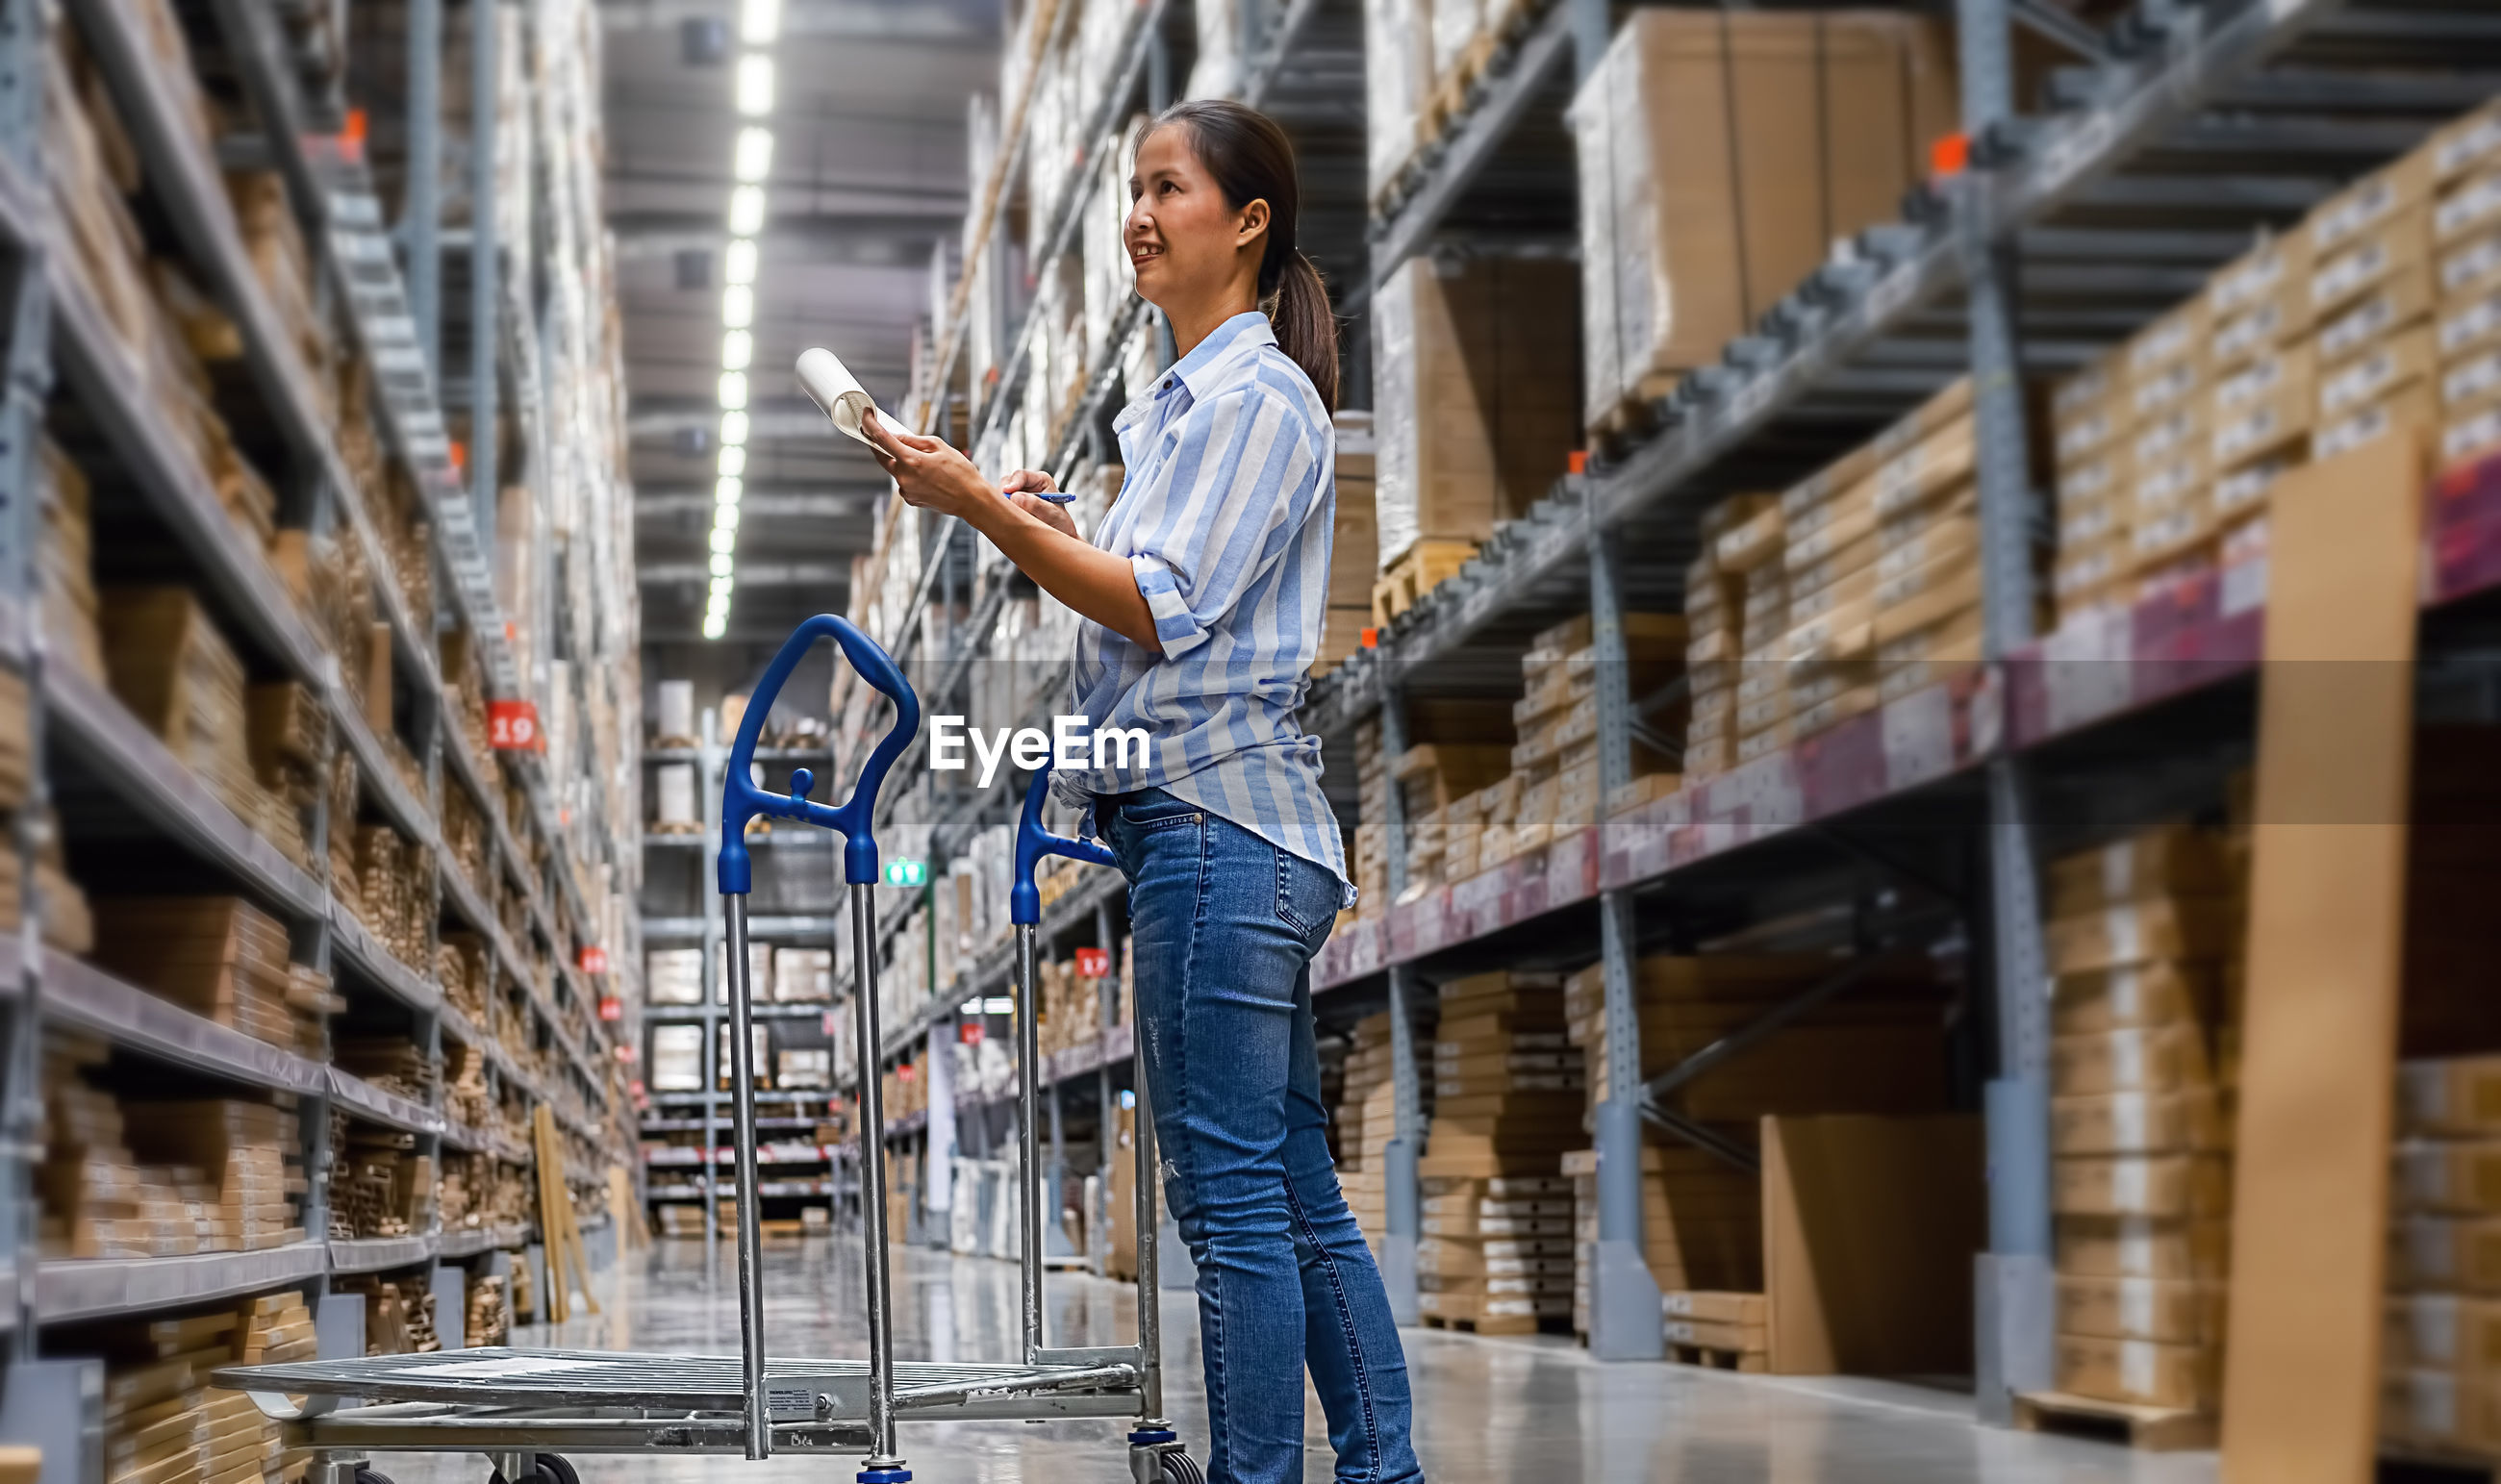 Entrepreneur writing while standing in warehouse